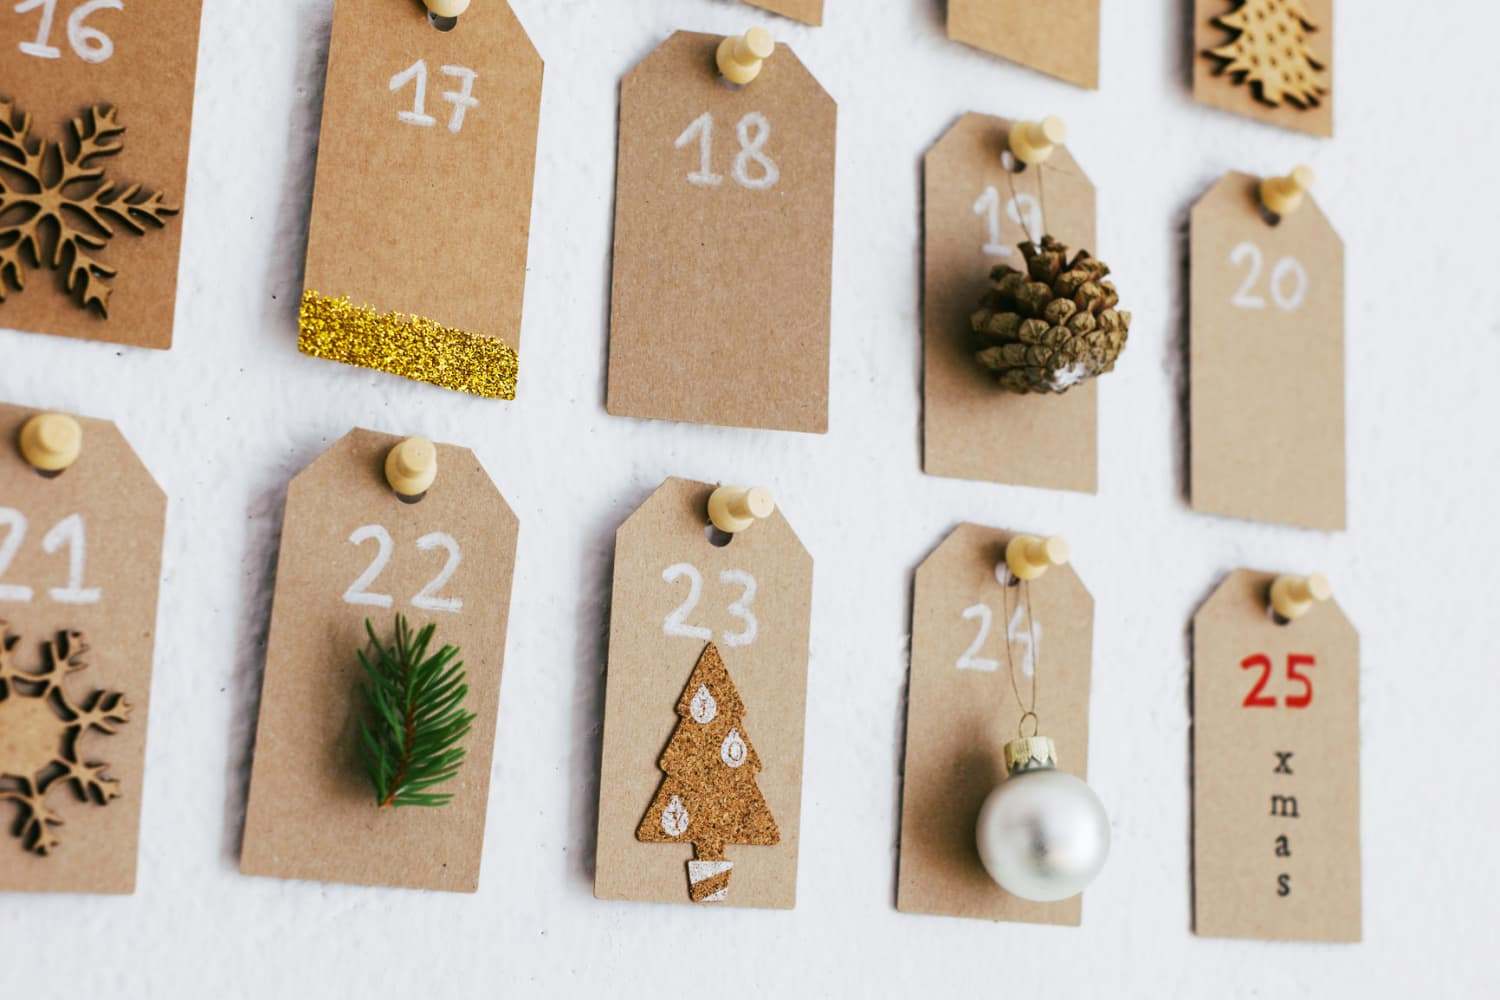 12 Advent Calendars for a Tasty (and Maybe Tipsy!) Christmas Countdown